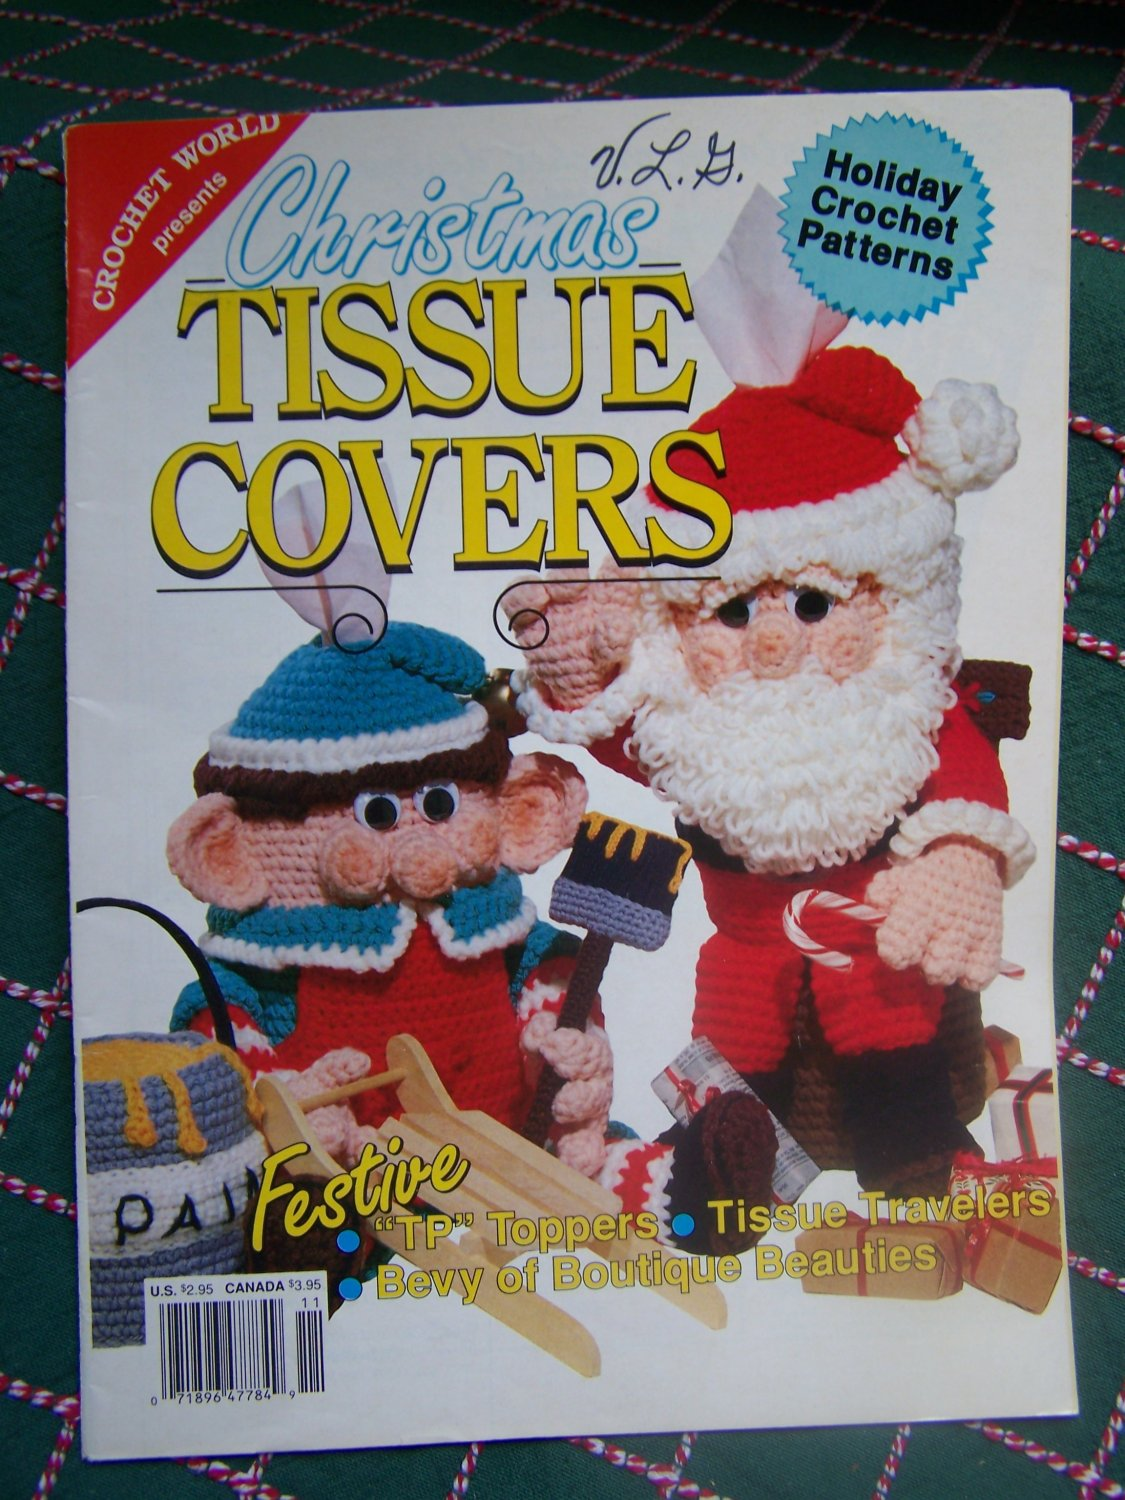 Vintage Christmas Crochet Patterns Decorative Tissue Covers